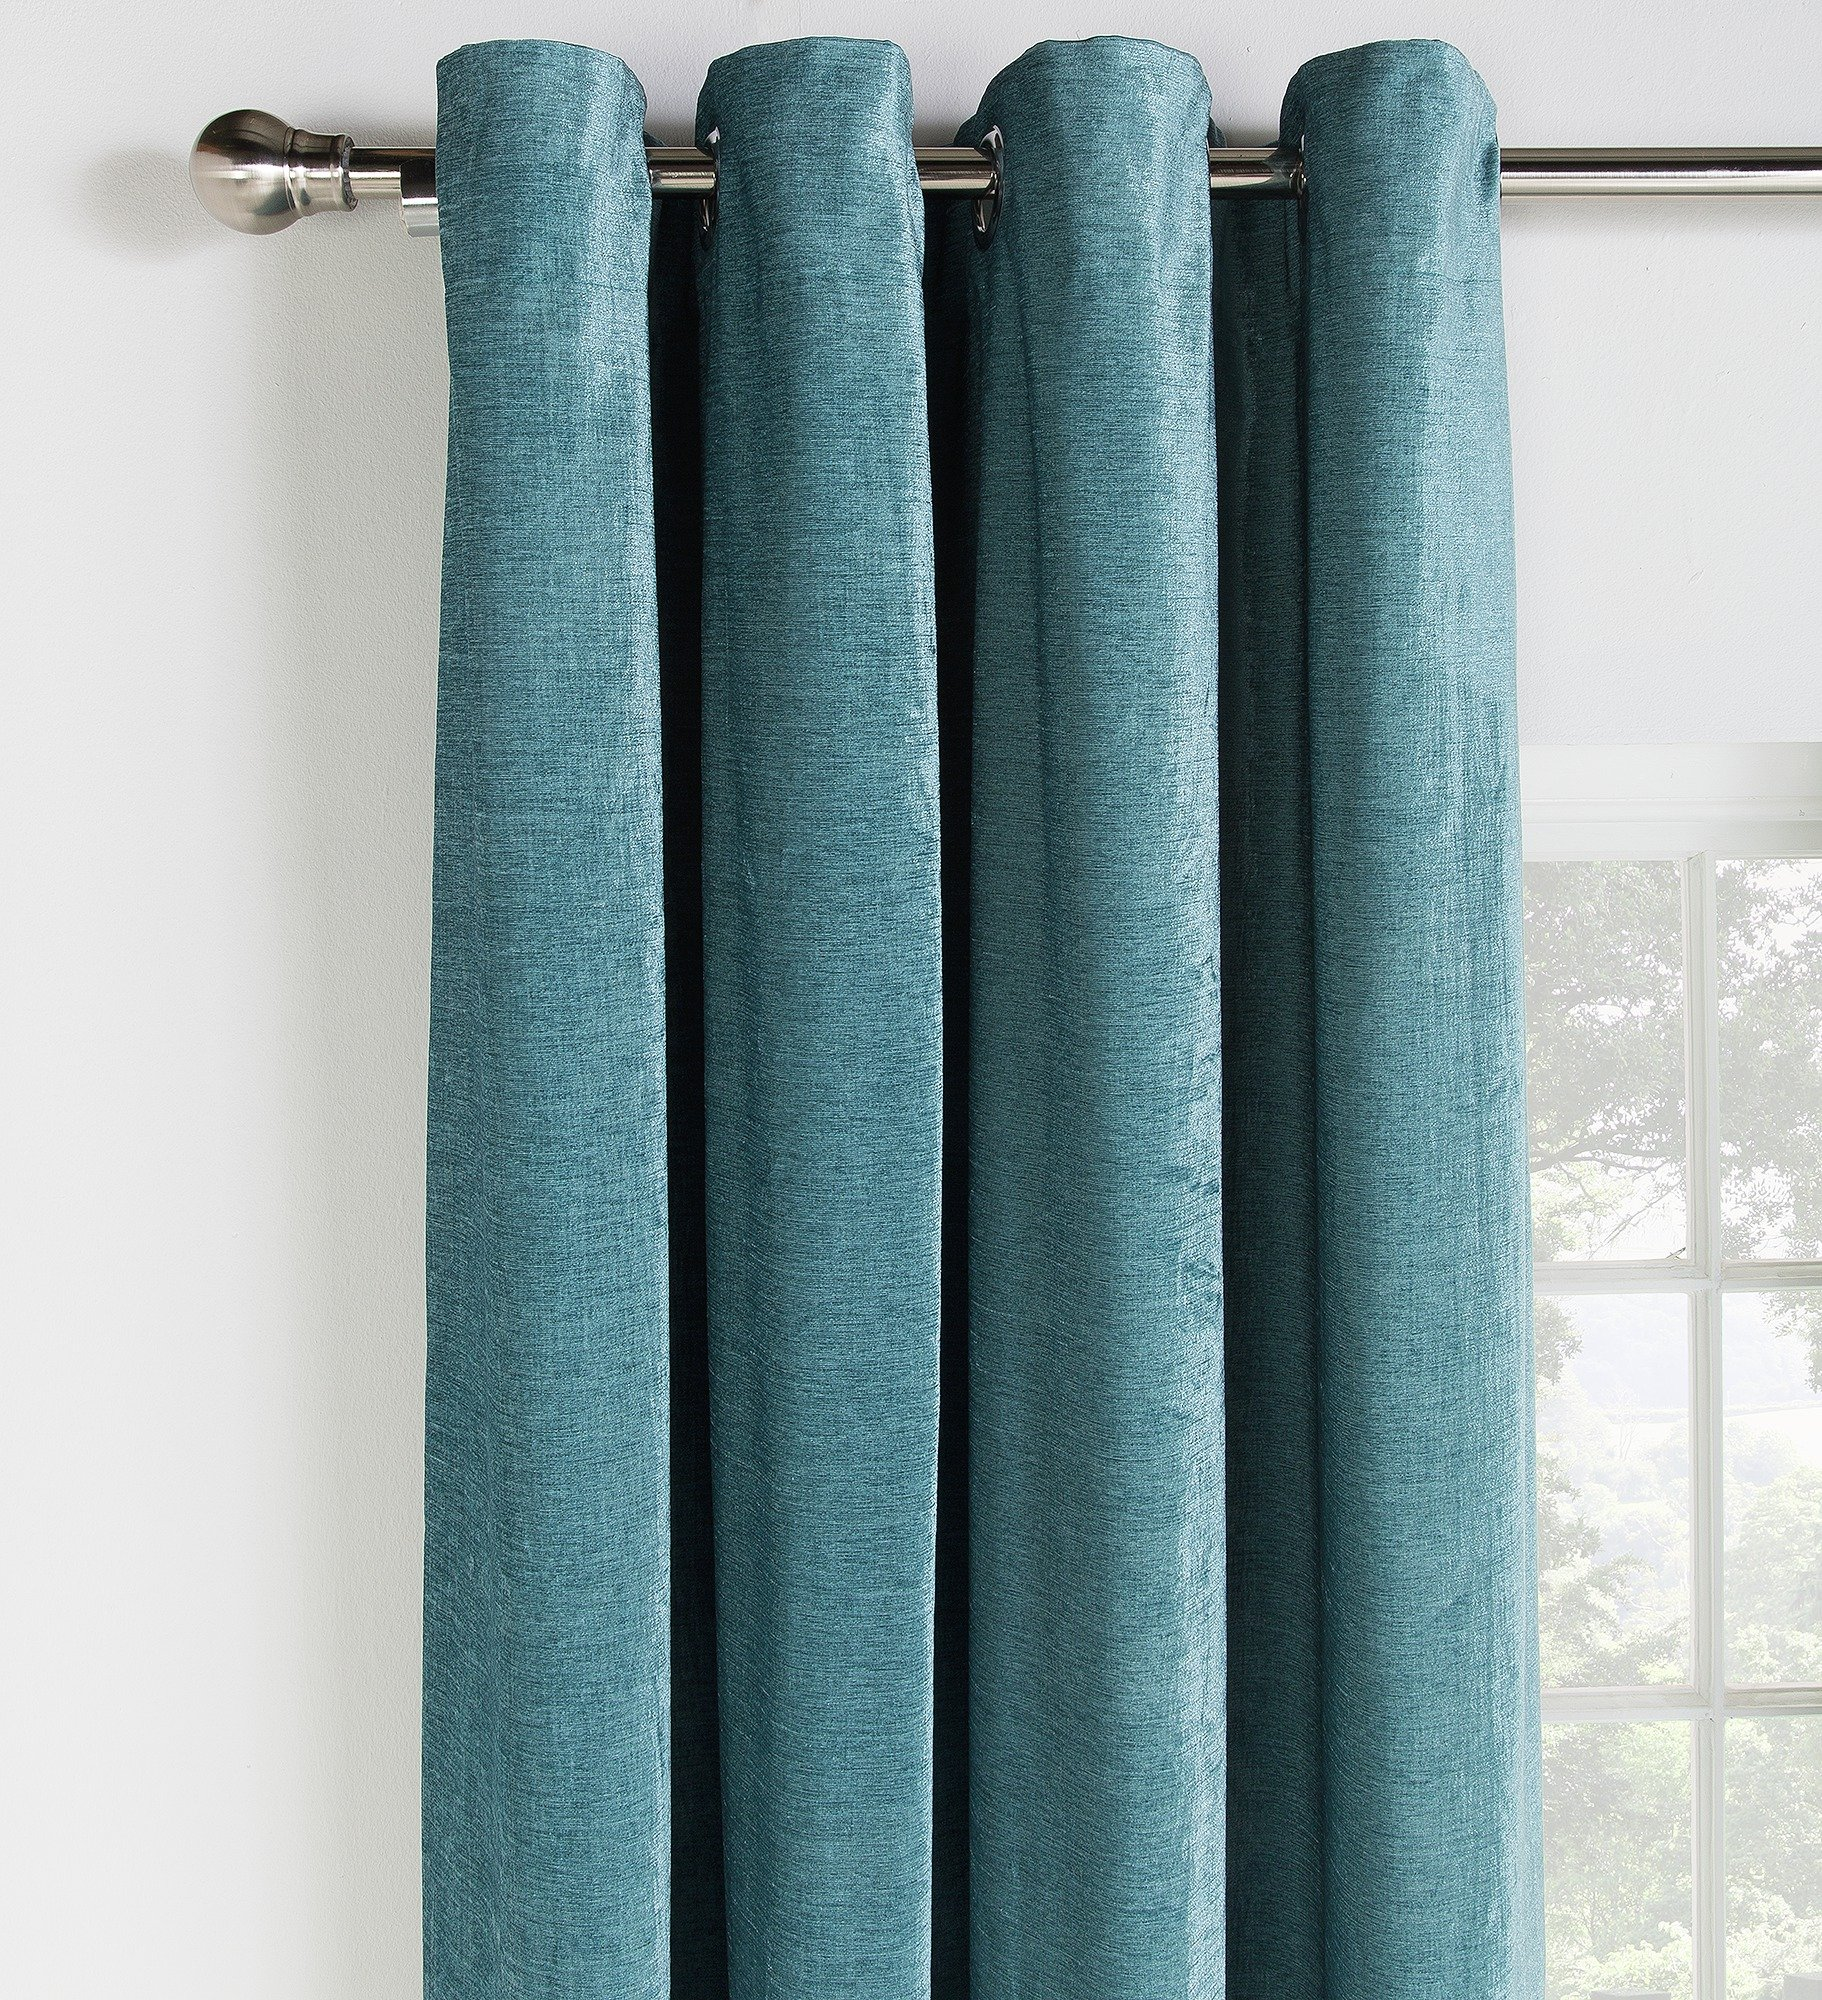 Green Curtains Shop For Green Eyelet Pencil Pleat Amp Tab